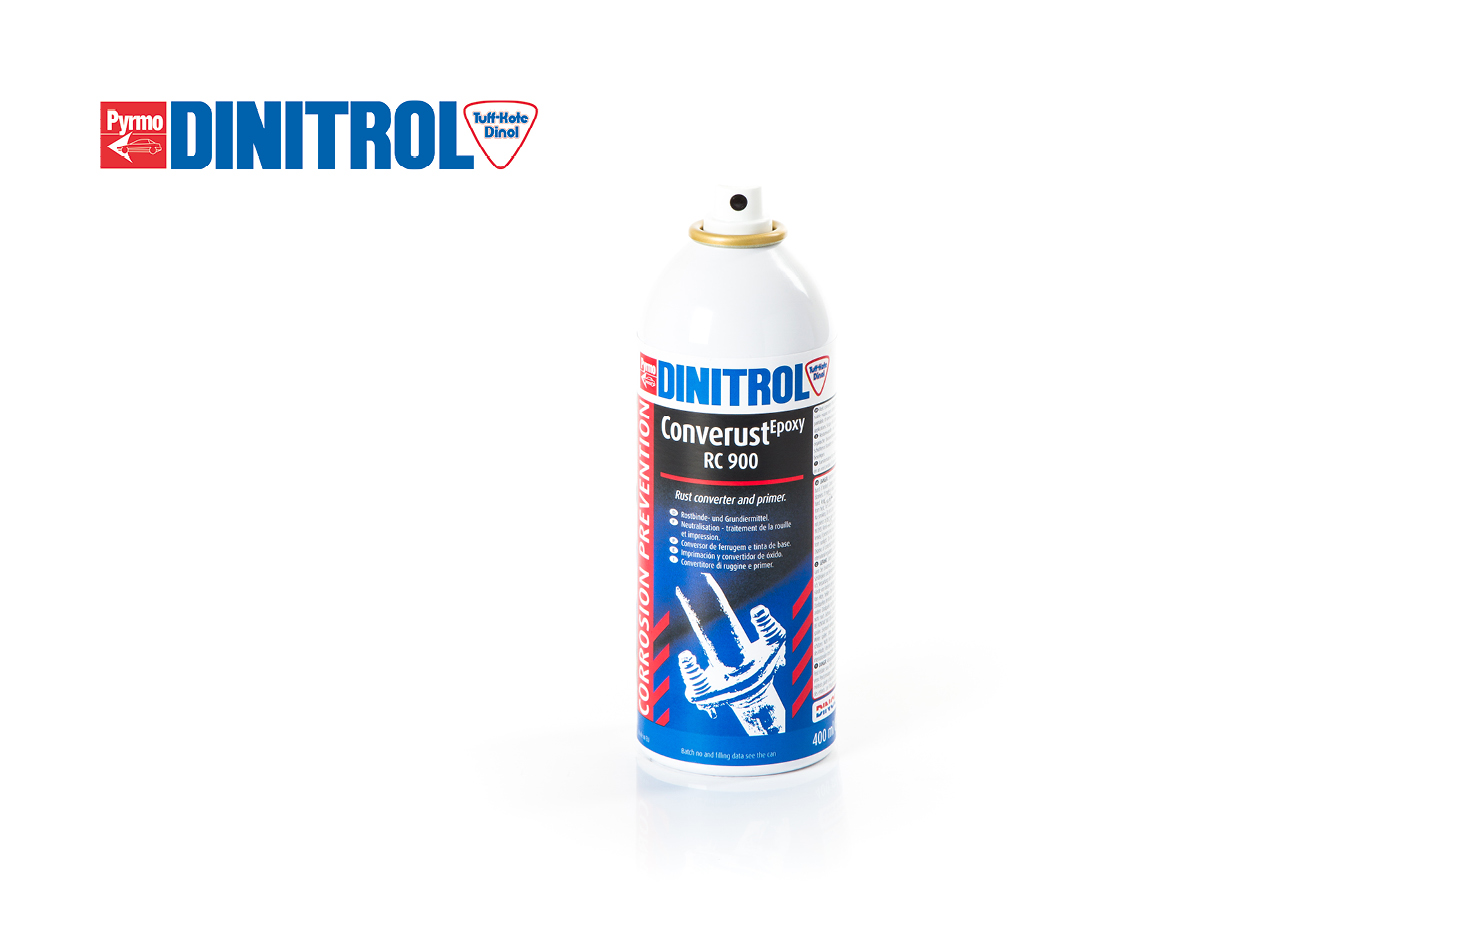 DINITROL rC900 rust converter is epoxy based treatment turns rust into stable organic iron complex. Rust converter aerosol